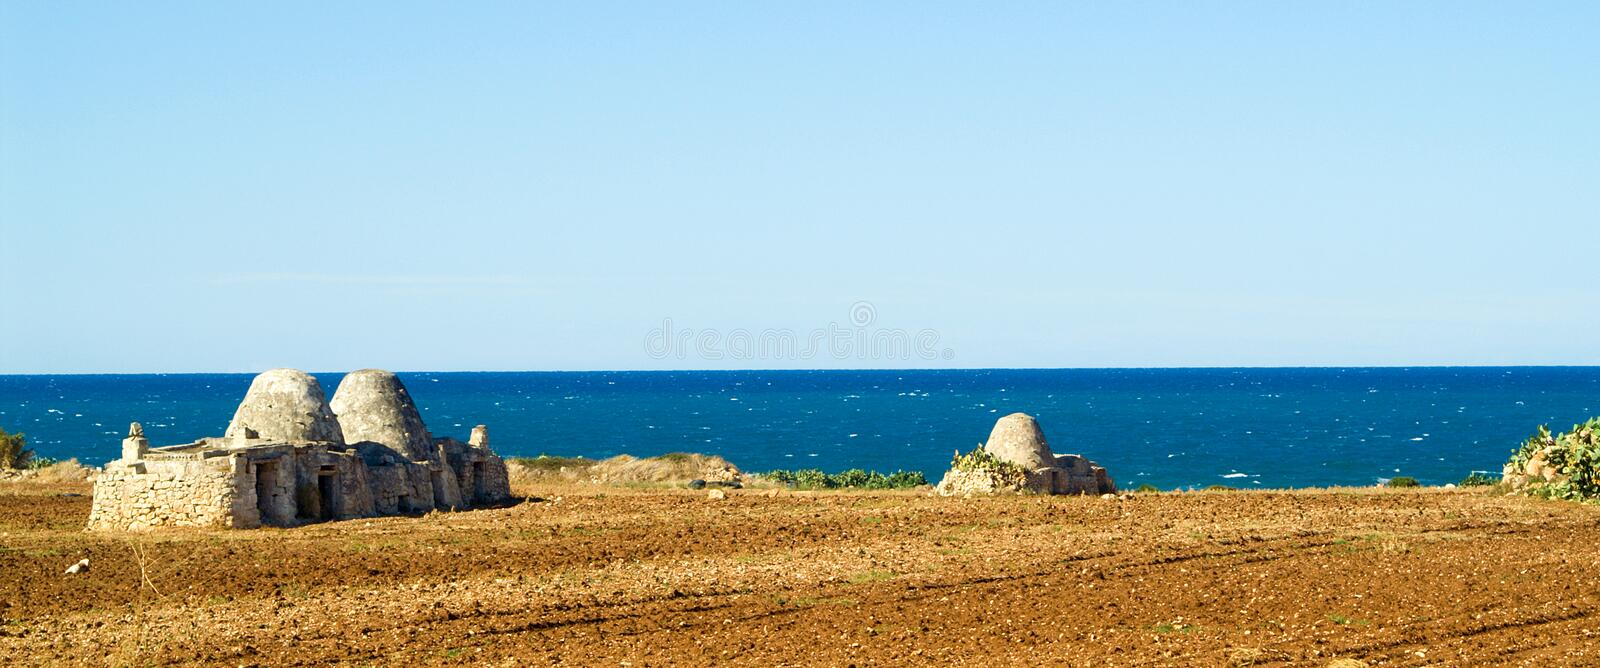 Puglia - South Italy Seascape royalty free stock images